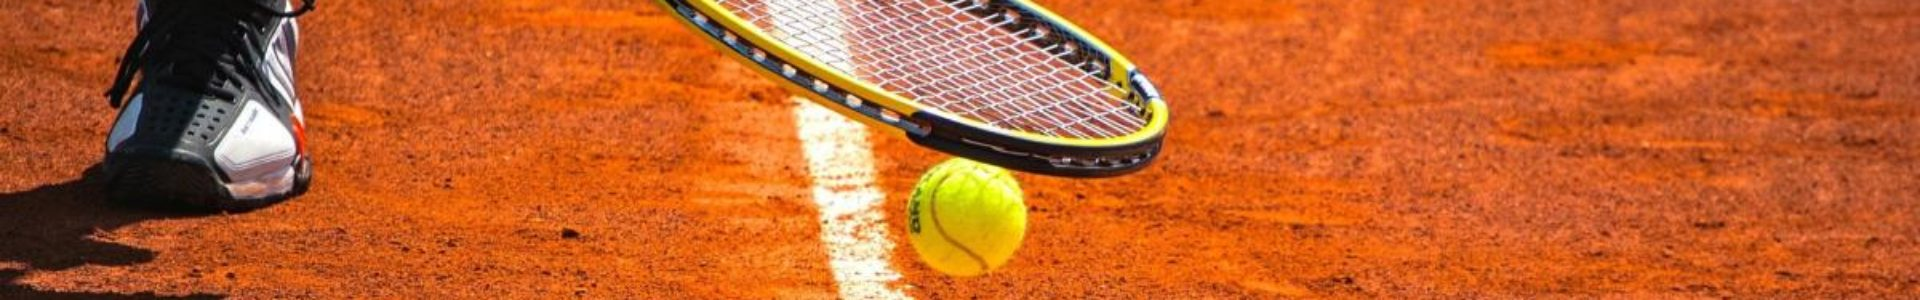 Categoria: Tennis e Beach Tennis